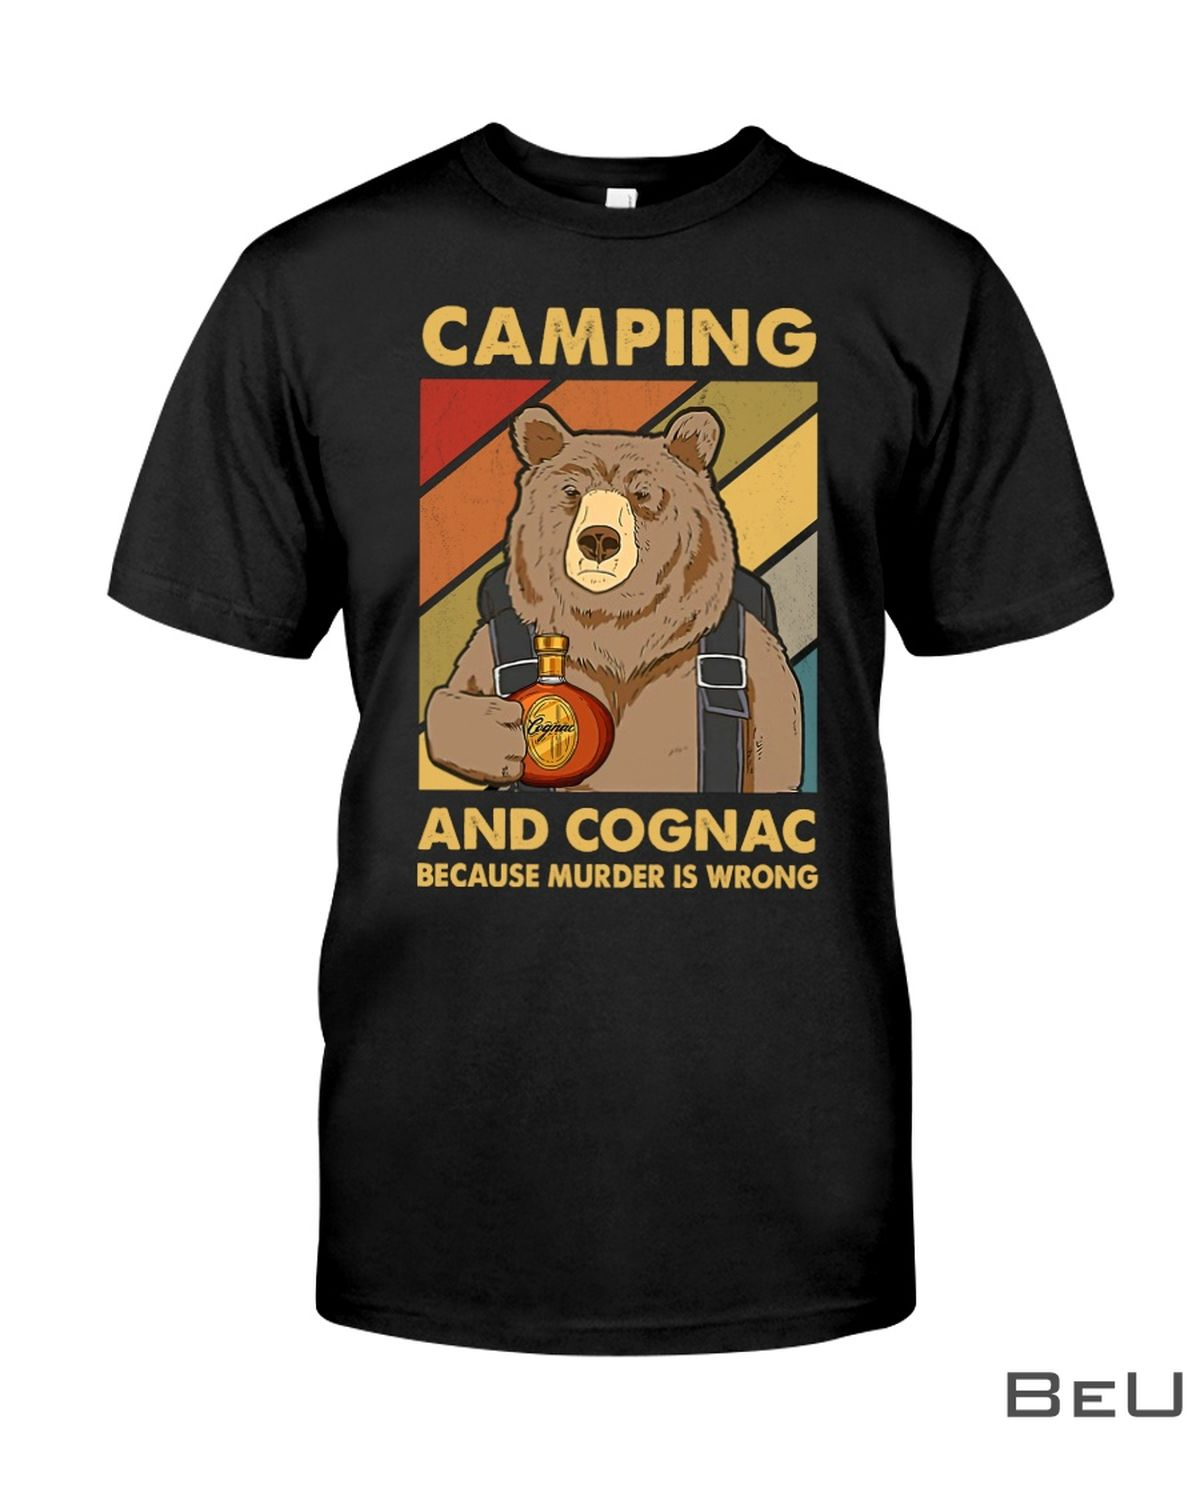 Camping And Cognac Because Murder Is Wrong Shirt, hoodie, tank top